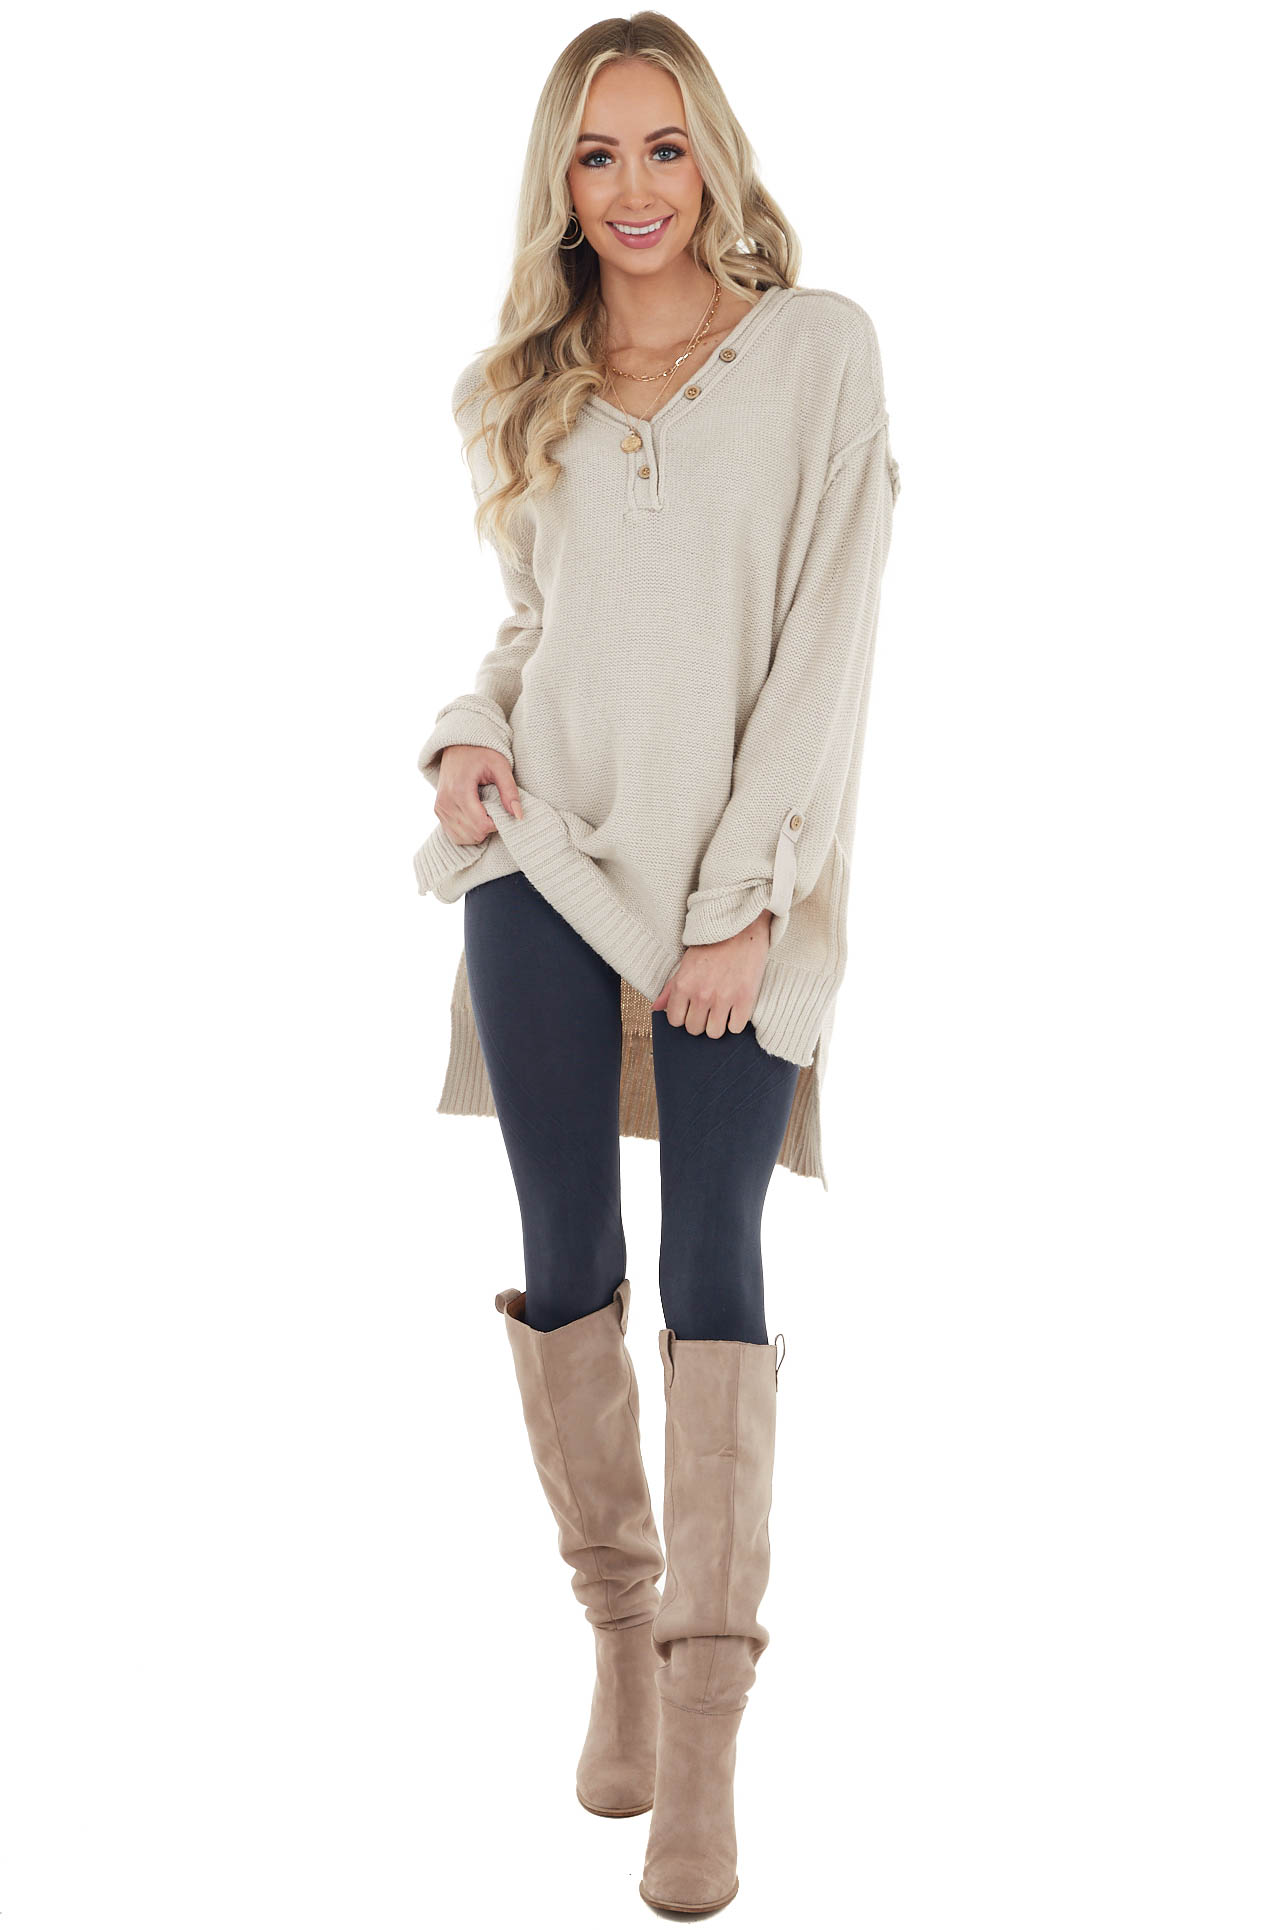 Oatmeal Long Sleeve V Neck Knit Sweater with Button Details